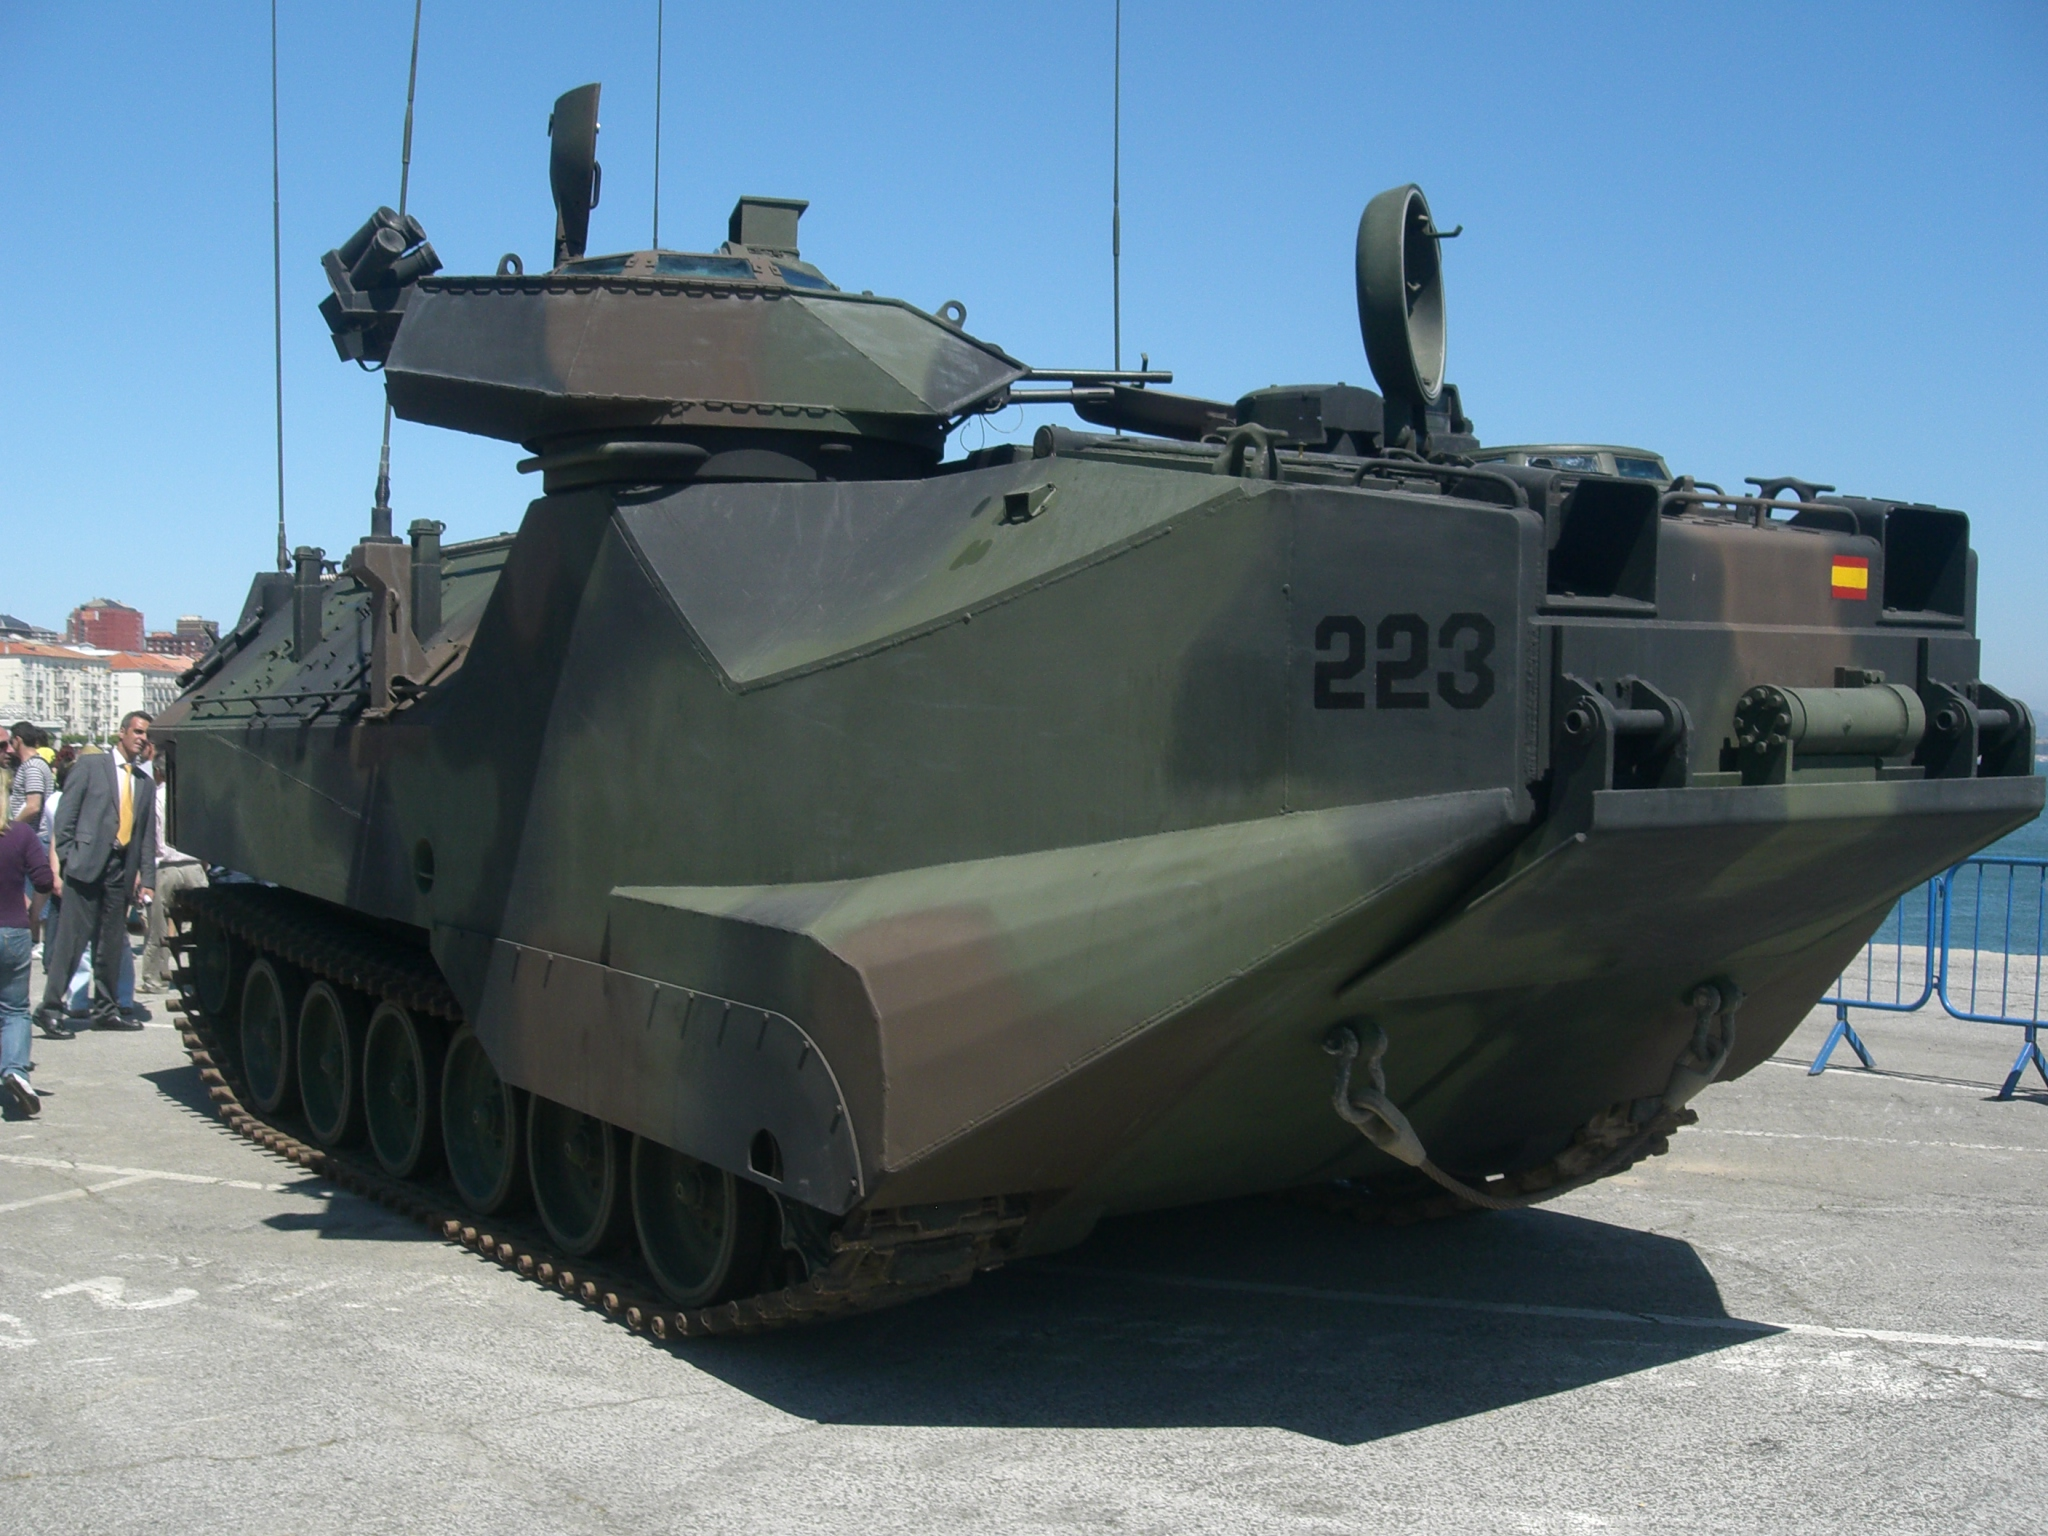 http://upload.wikimedia.org/wikipedia/commons/0/0b/AAV-7_en_Santander1.JPG